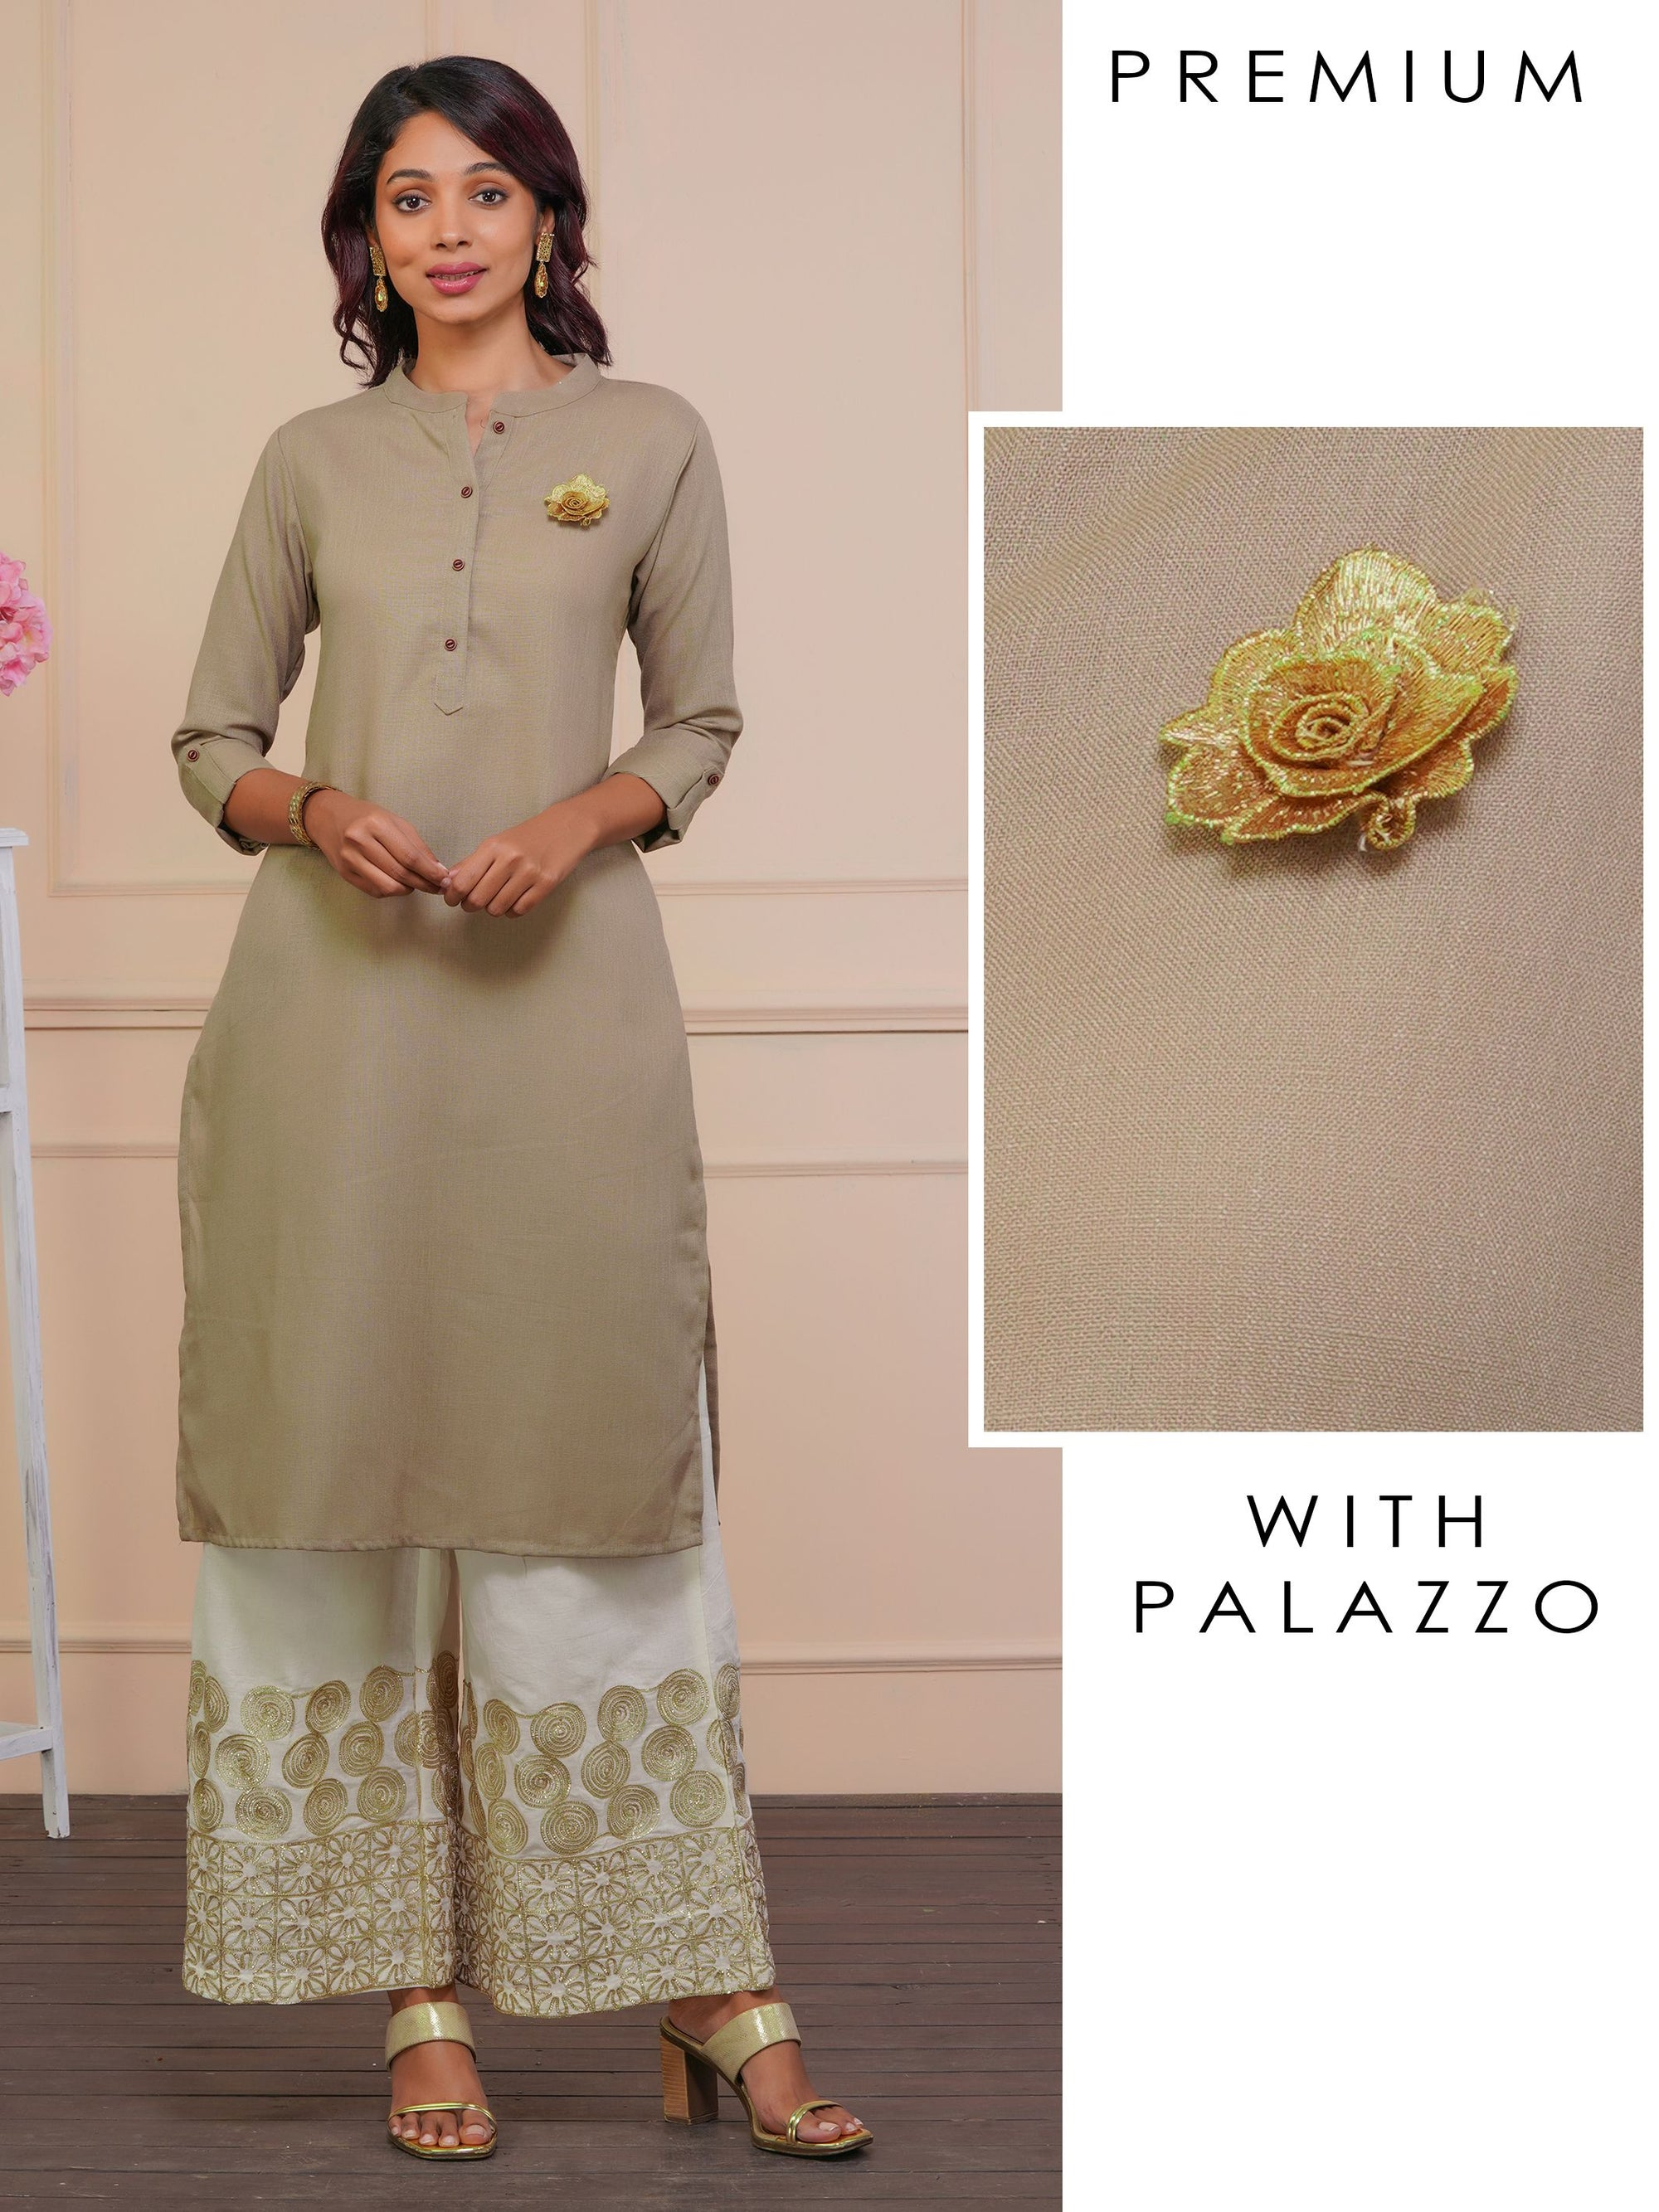 Gold Zari Floral Applique Kurta with Gota Embellished Palazzo Set - Light Taupe Brown